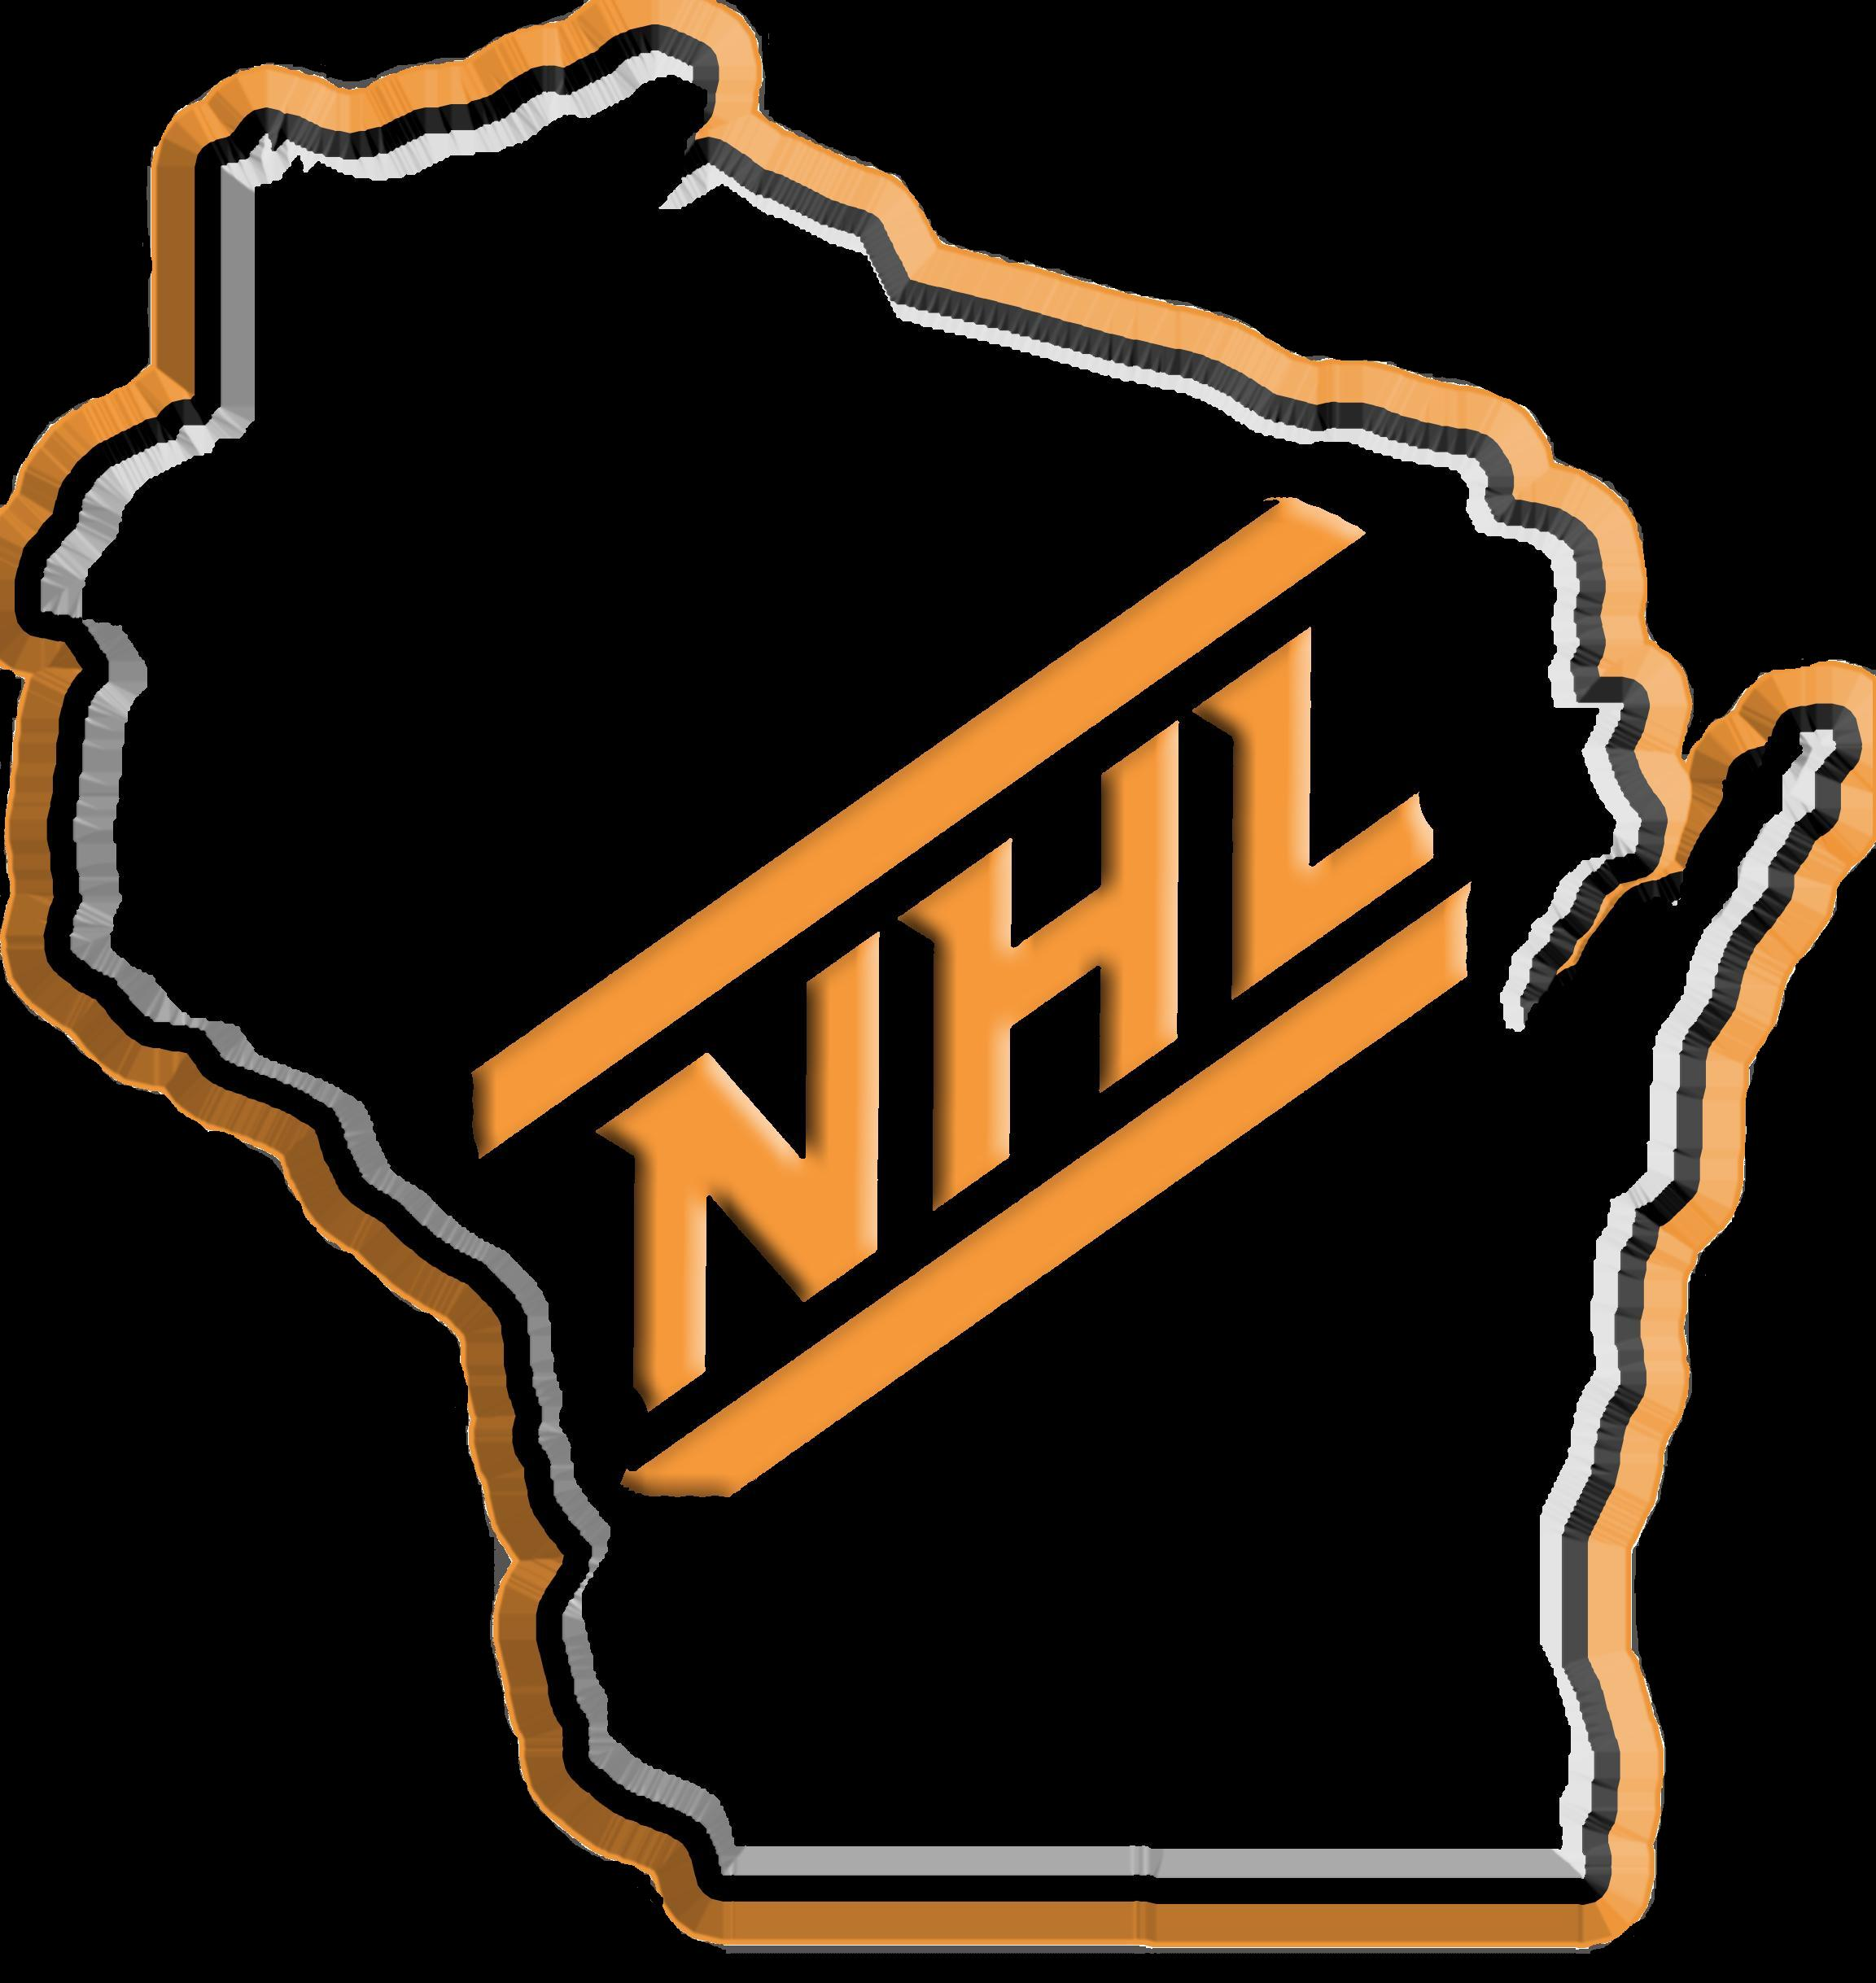 HD Wallpapers Source Nhl HD Wallpapers 2305x2437